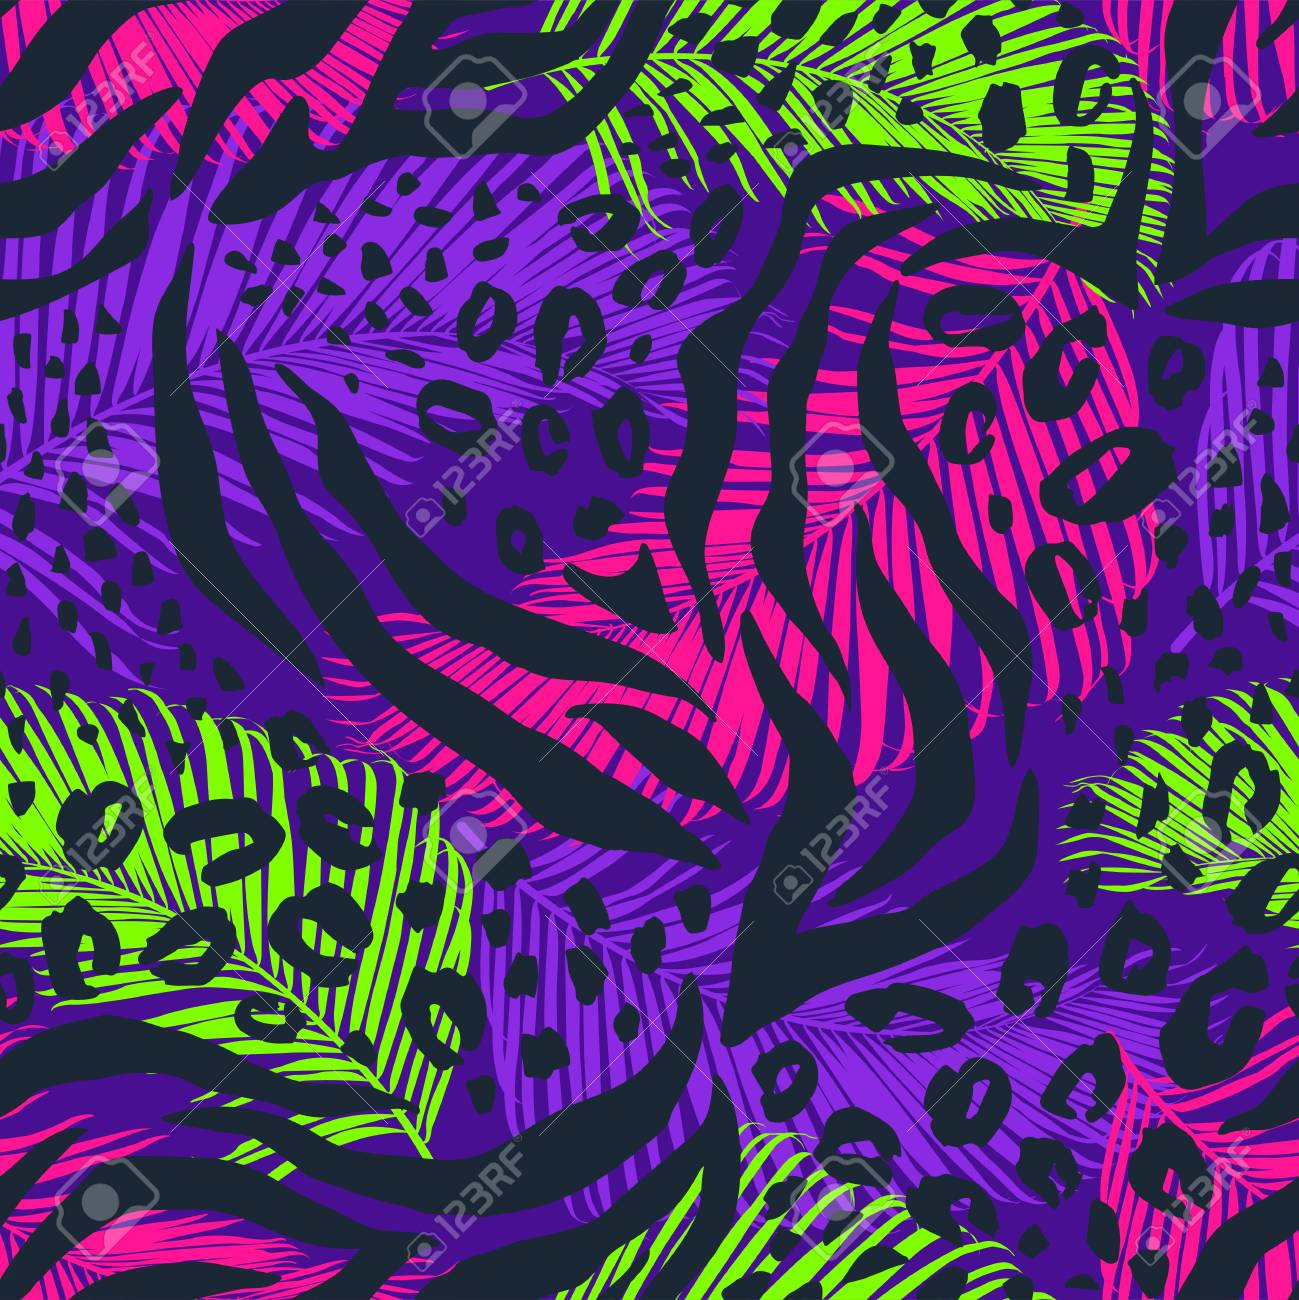 Abstract geometric seamless pattern with animal print. Trendy hand drawn textures. - 127302421